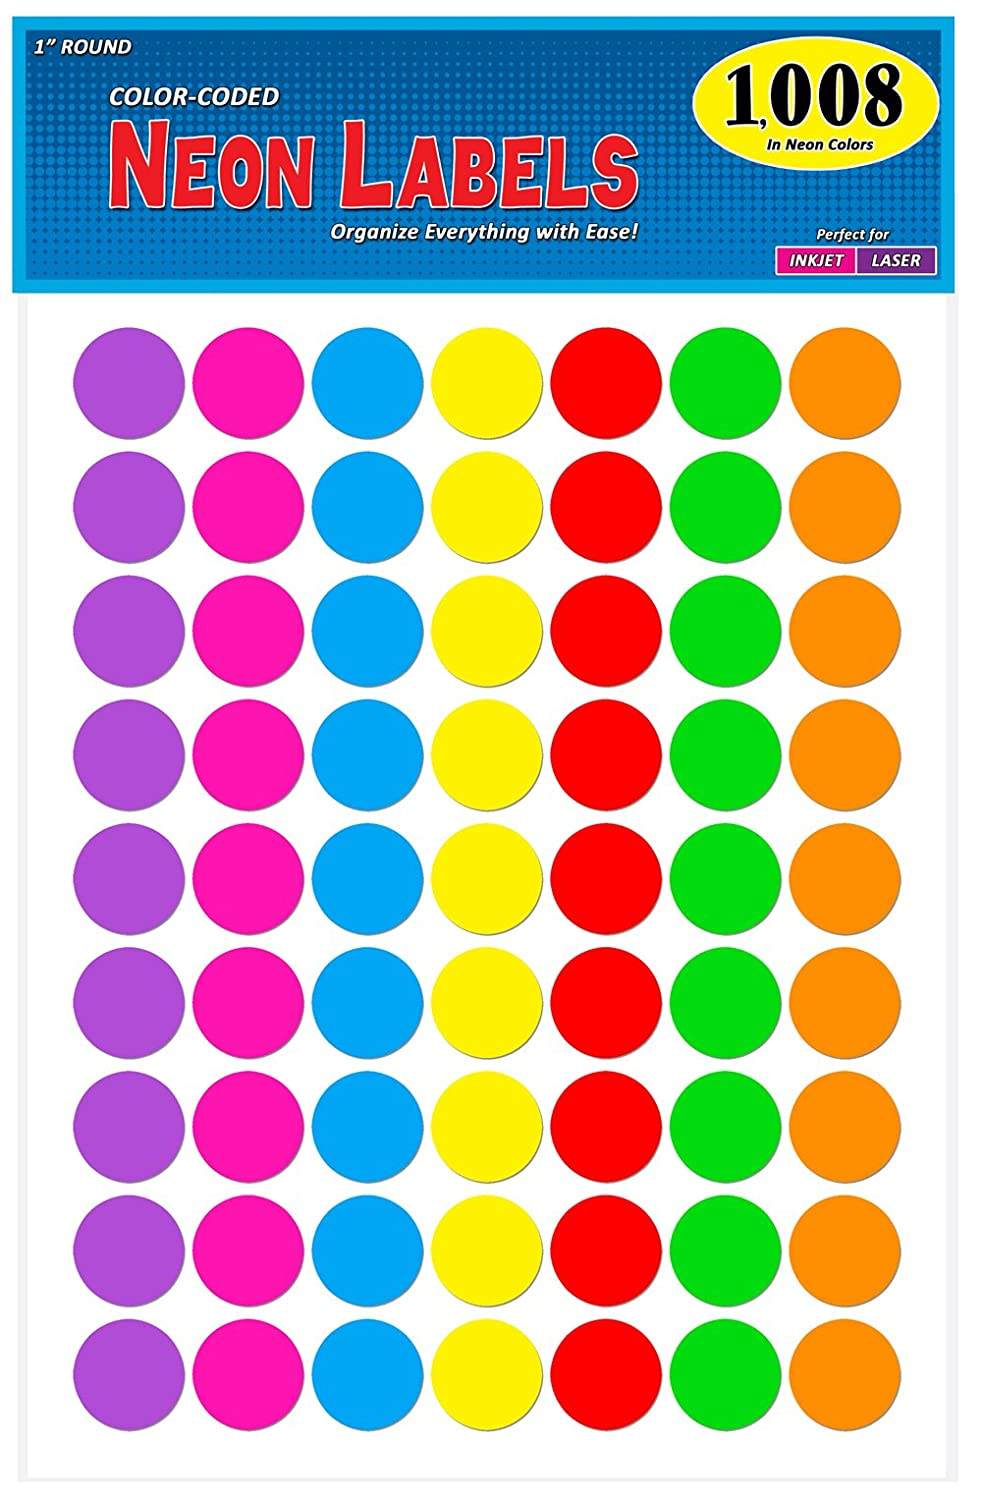 Pack Of 1008 1 Inch Diameter Round Color Coding Dot Labels 7 Bright Neon Colors Ebay